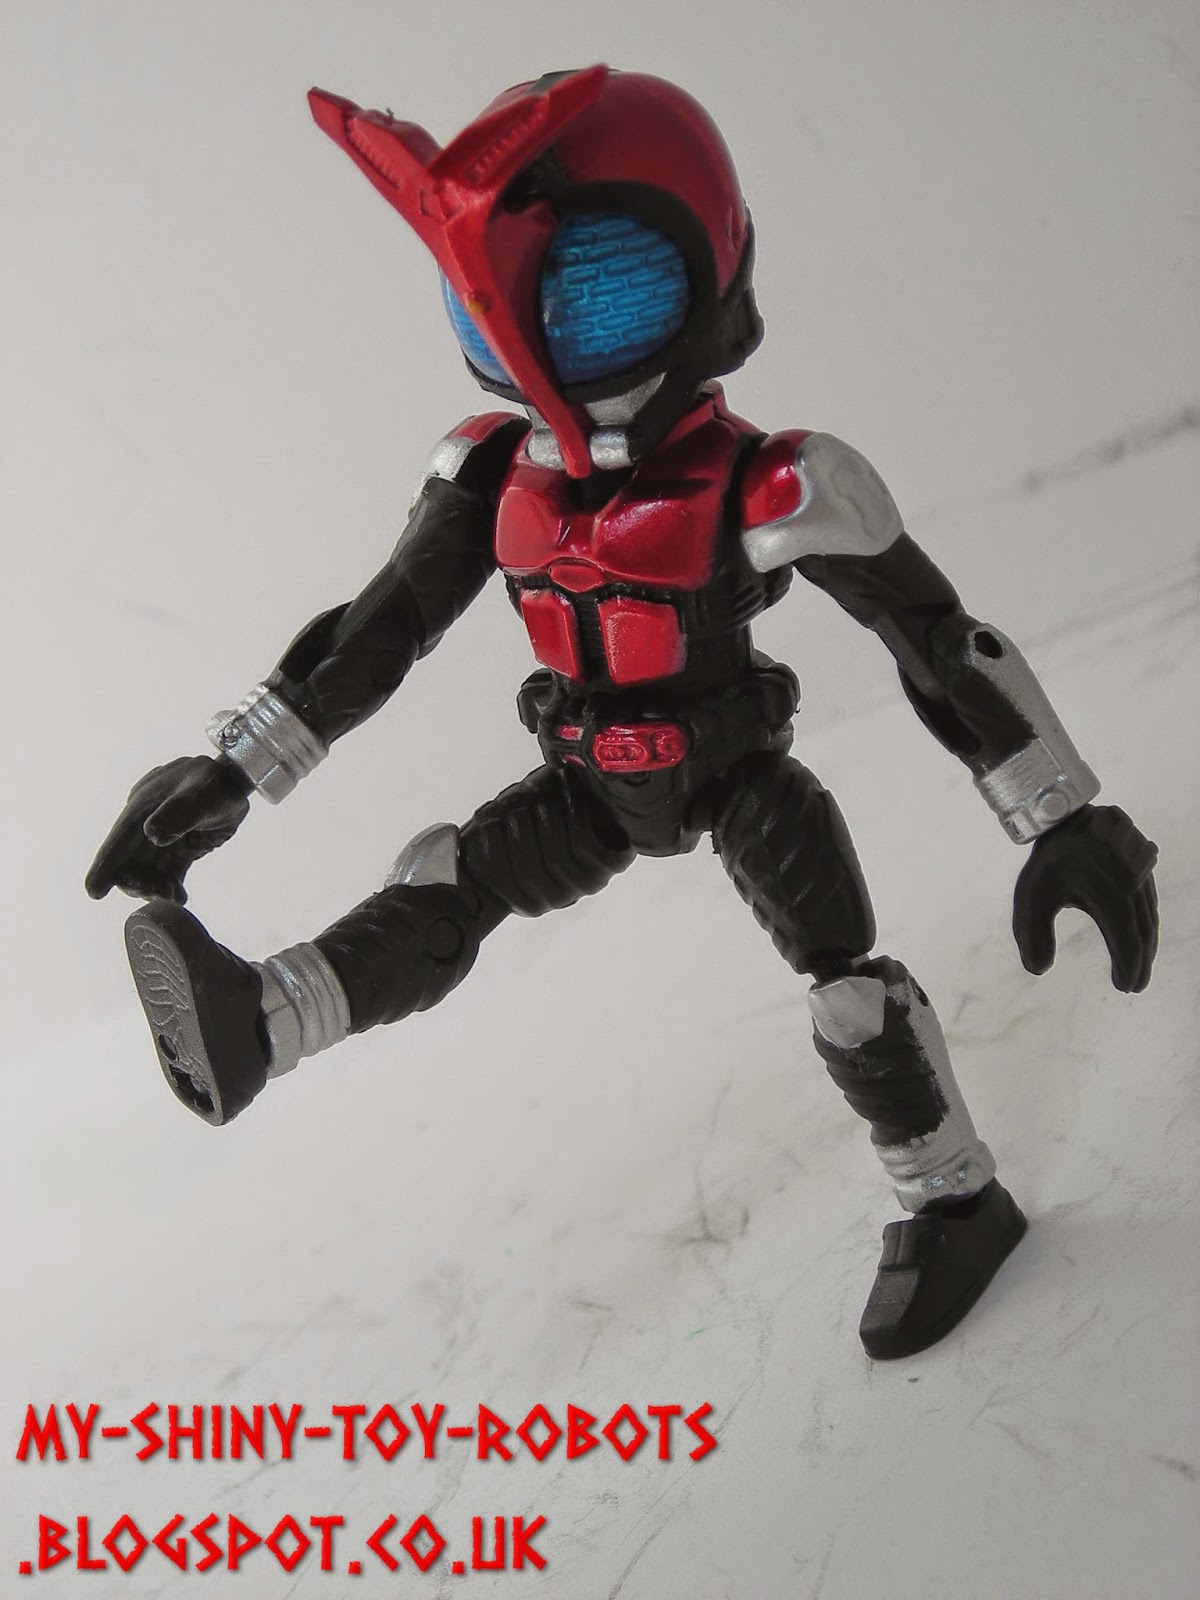 Miniature Rider Kick!